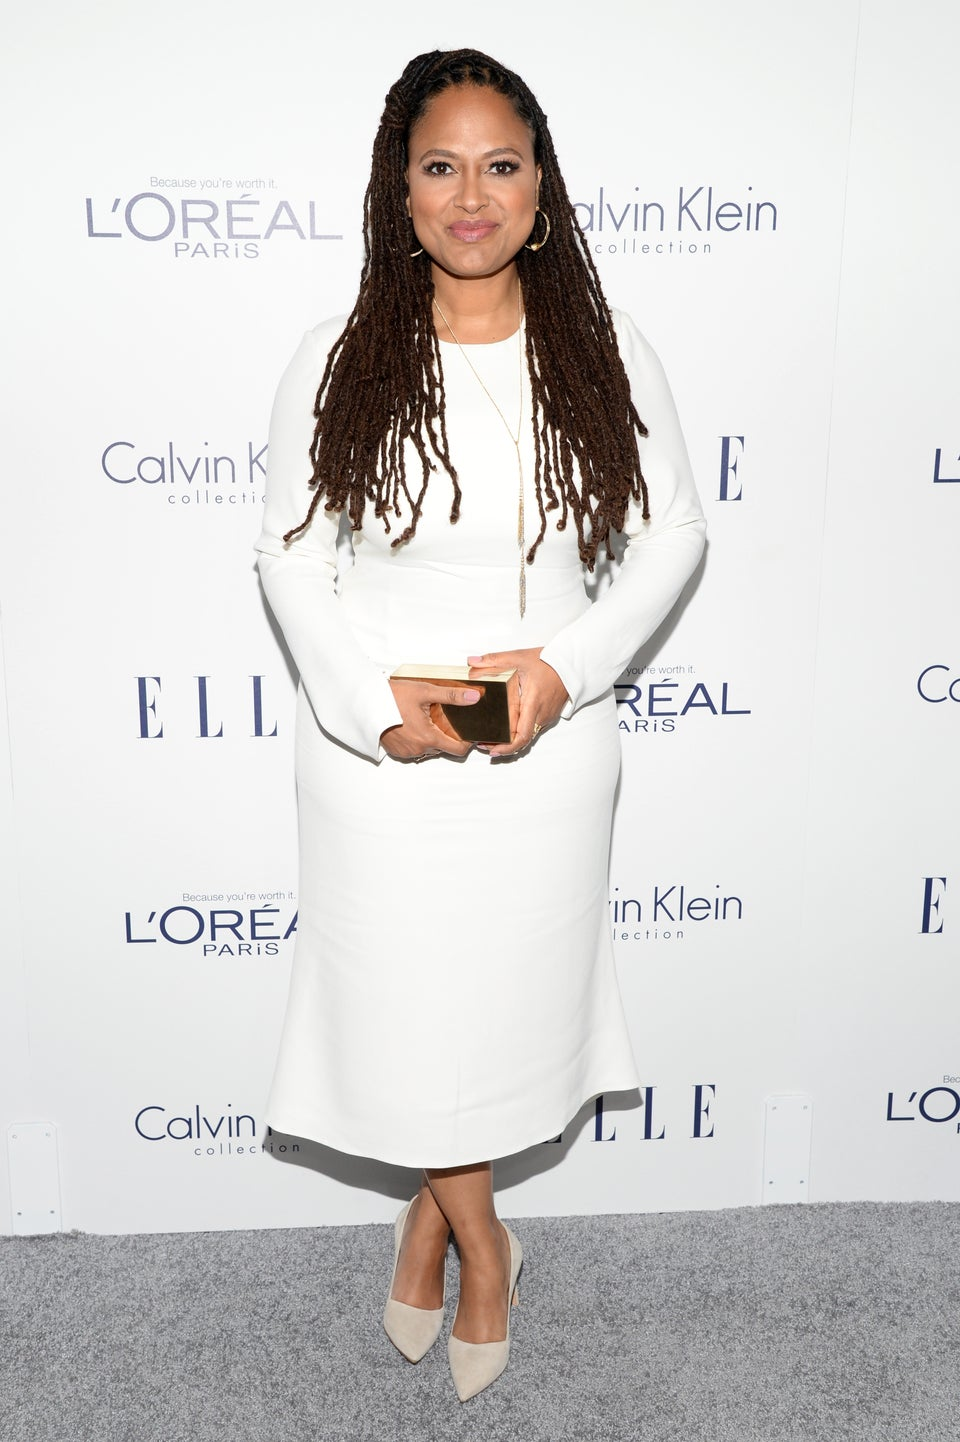 Ava DuVernay To Make History With Premiere Of Her Latest Documentary At The New York Film Festival